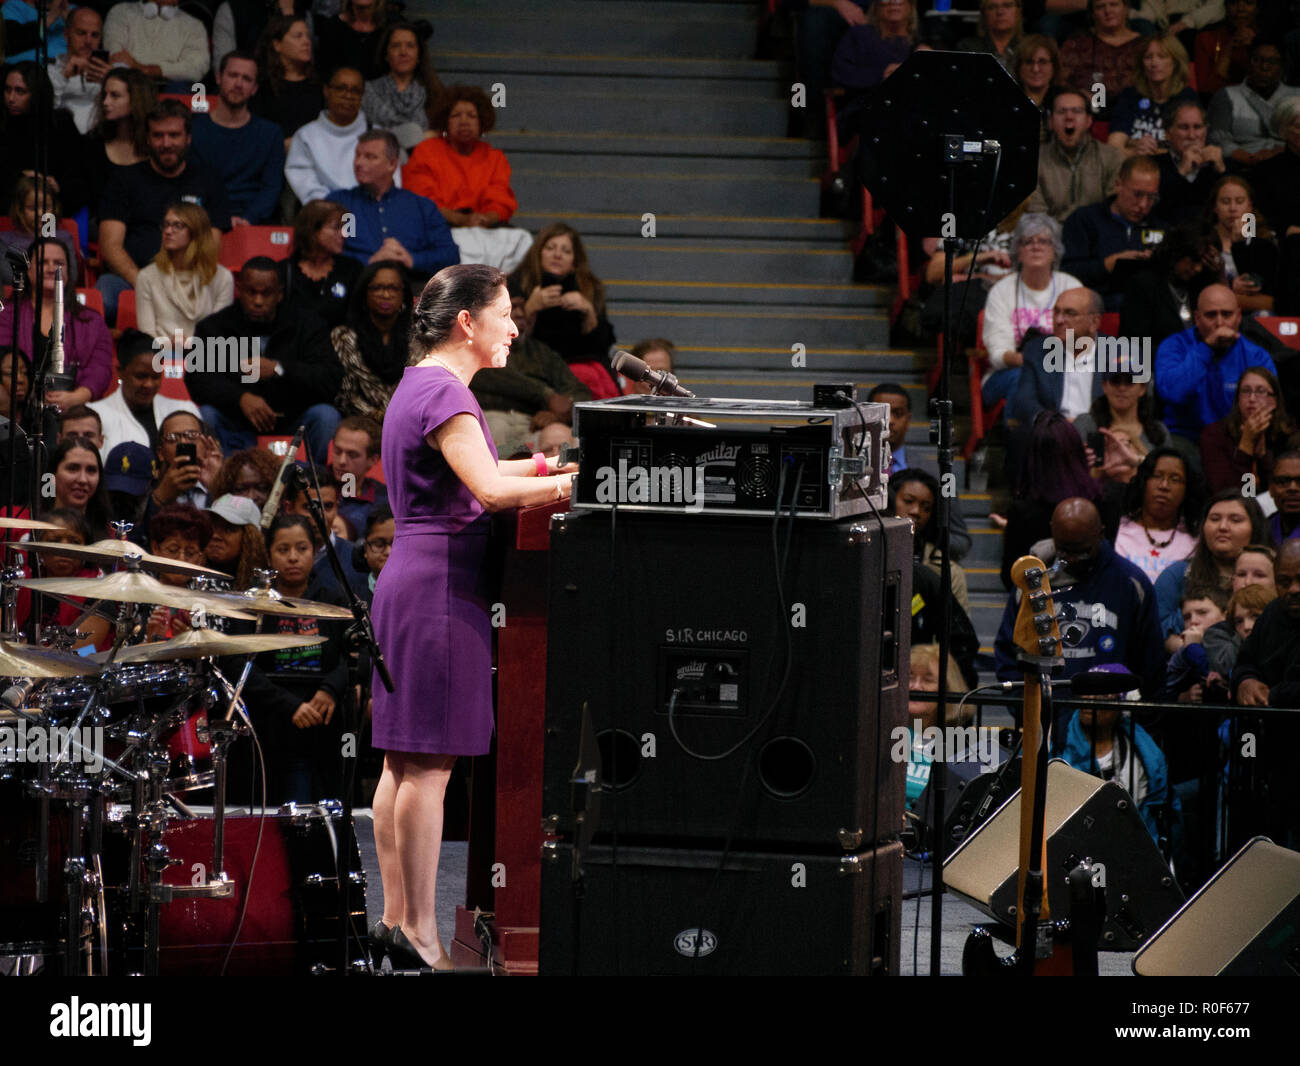 Chicago, Illinois, USA. 4th November 2018. Illinois Comptroller Susana Mendoza speaks at today's rally. The rally was a final push preceding the upcoming midterm general election this Tuesday, which many expect will be a wave election in favor of the Democrats. Credit: Todd Bannor/Alamy Live News - Stock Image